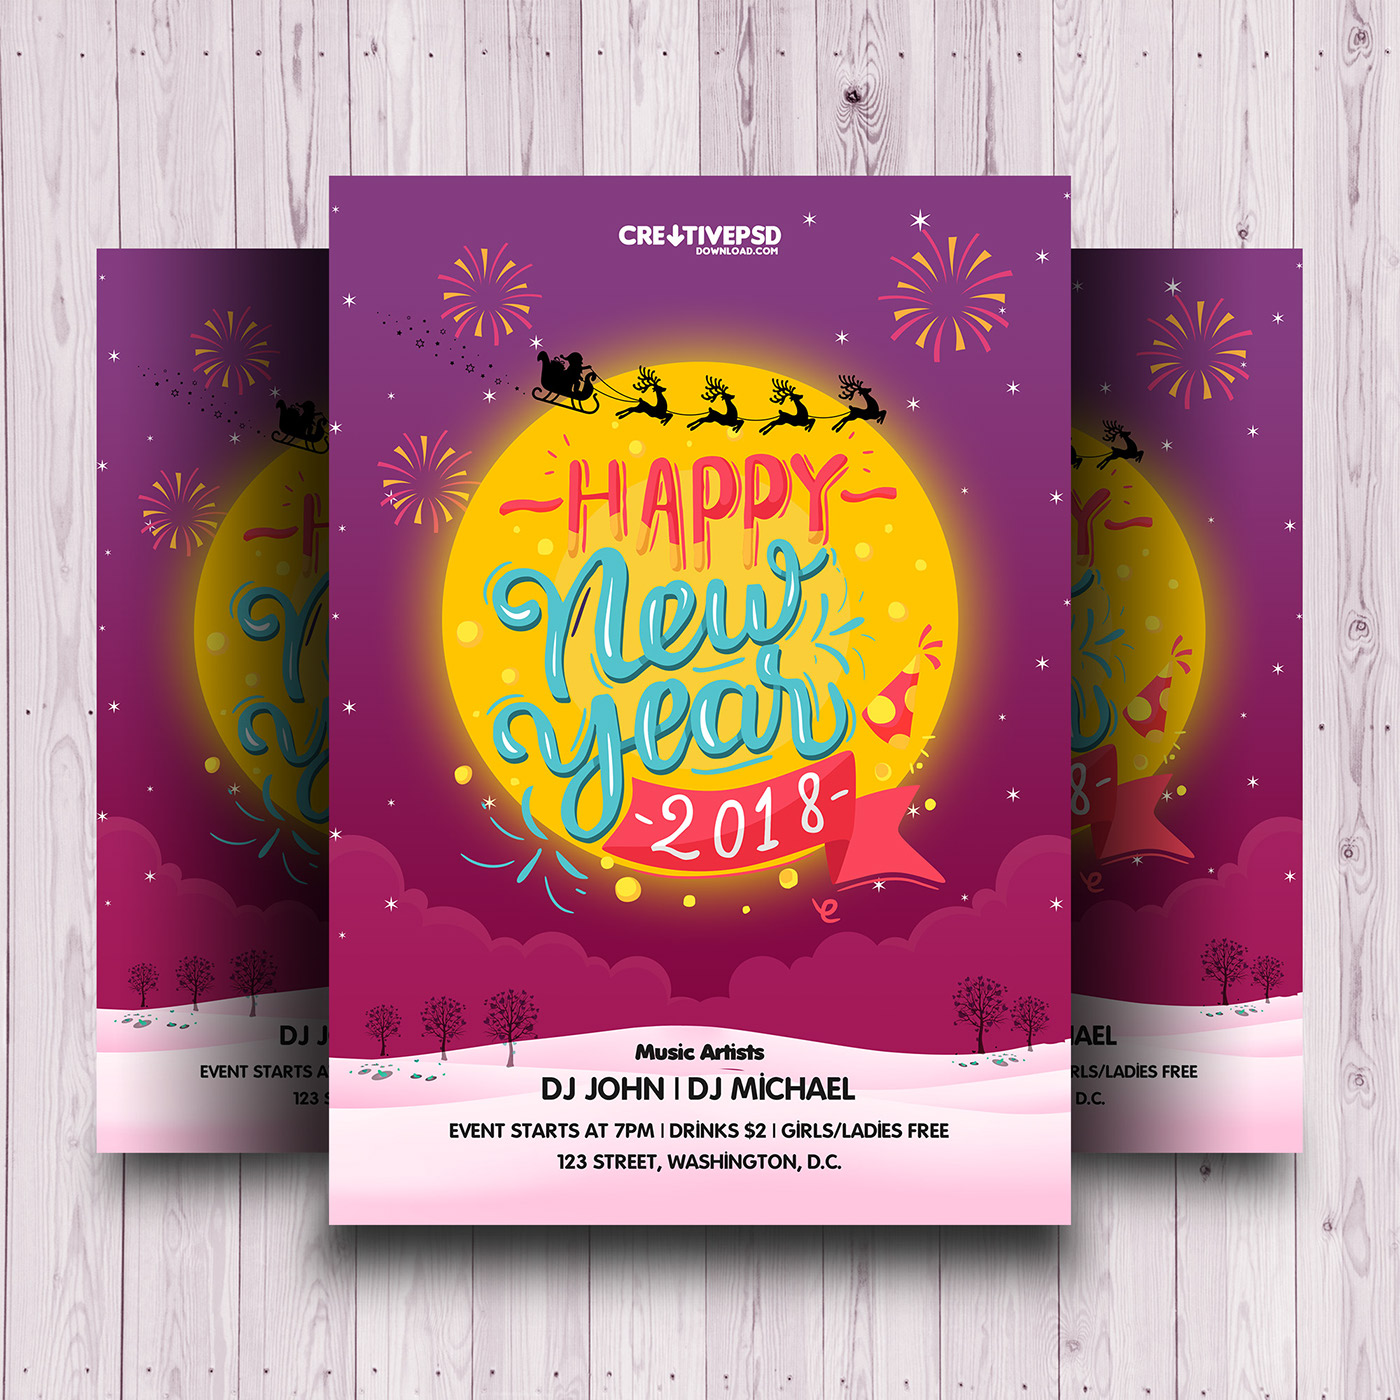 2018 happy new year invitation flyer psd on behance